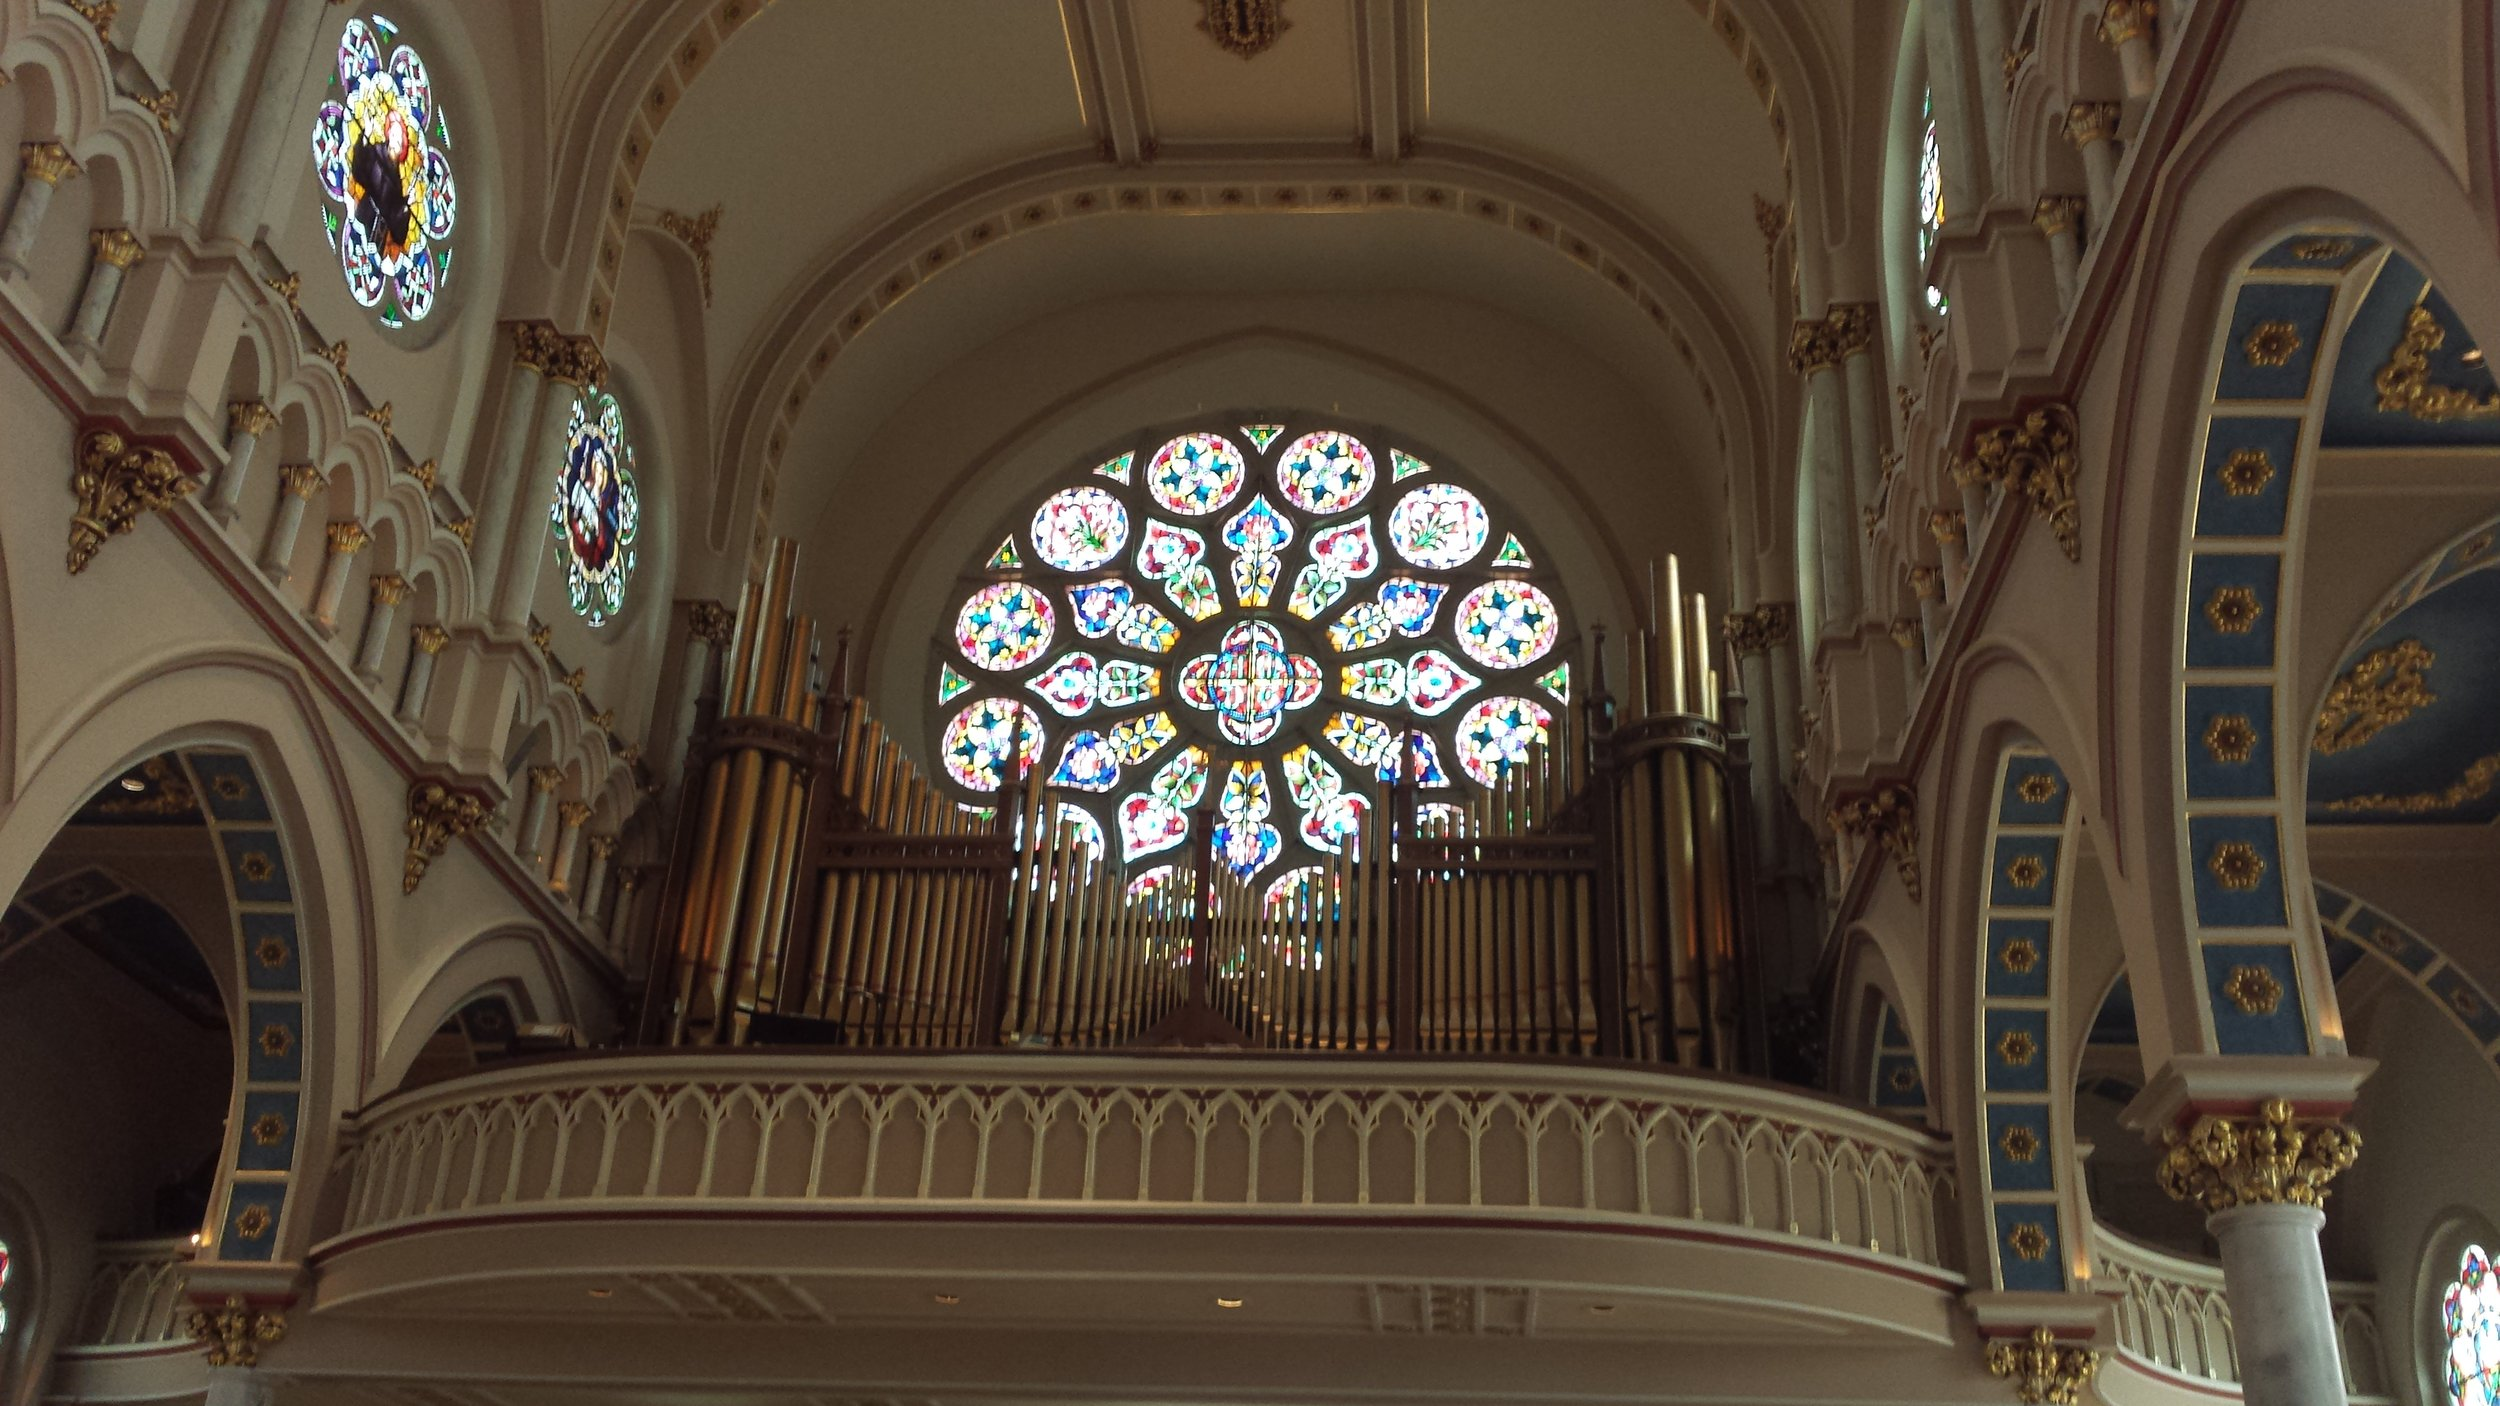 Beautiful stained glass at St. Joseph's Church in downtown Macon